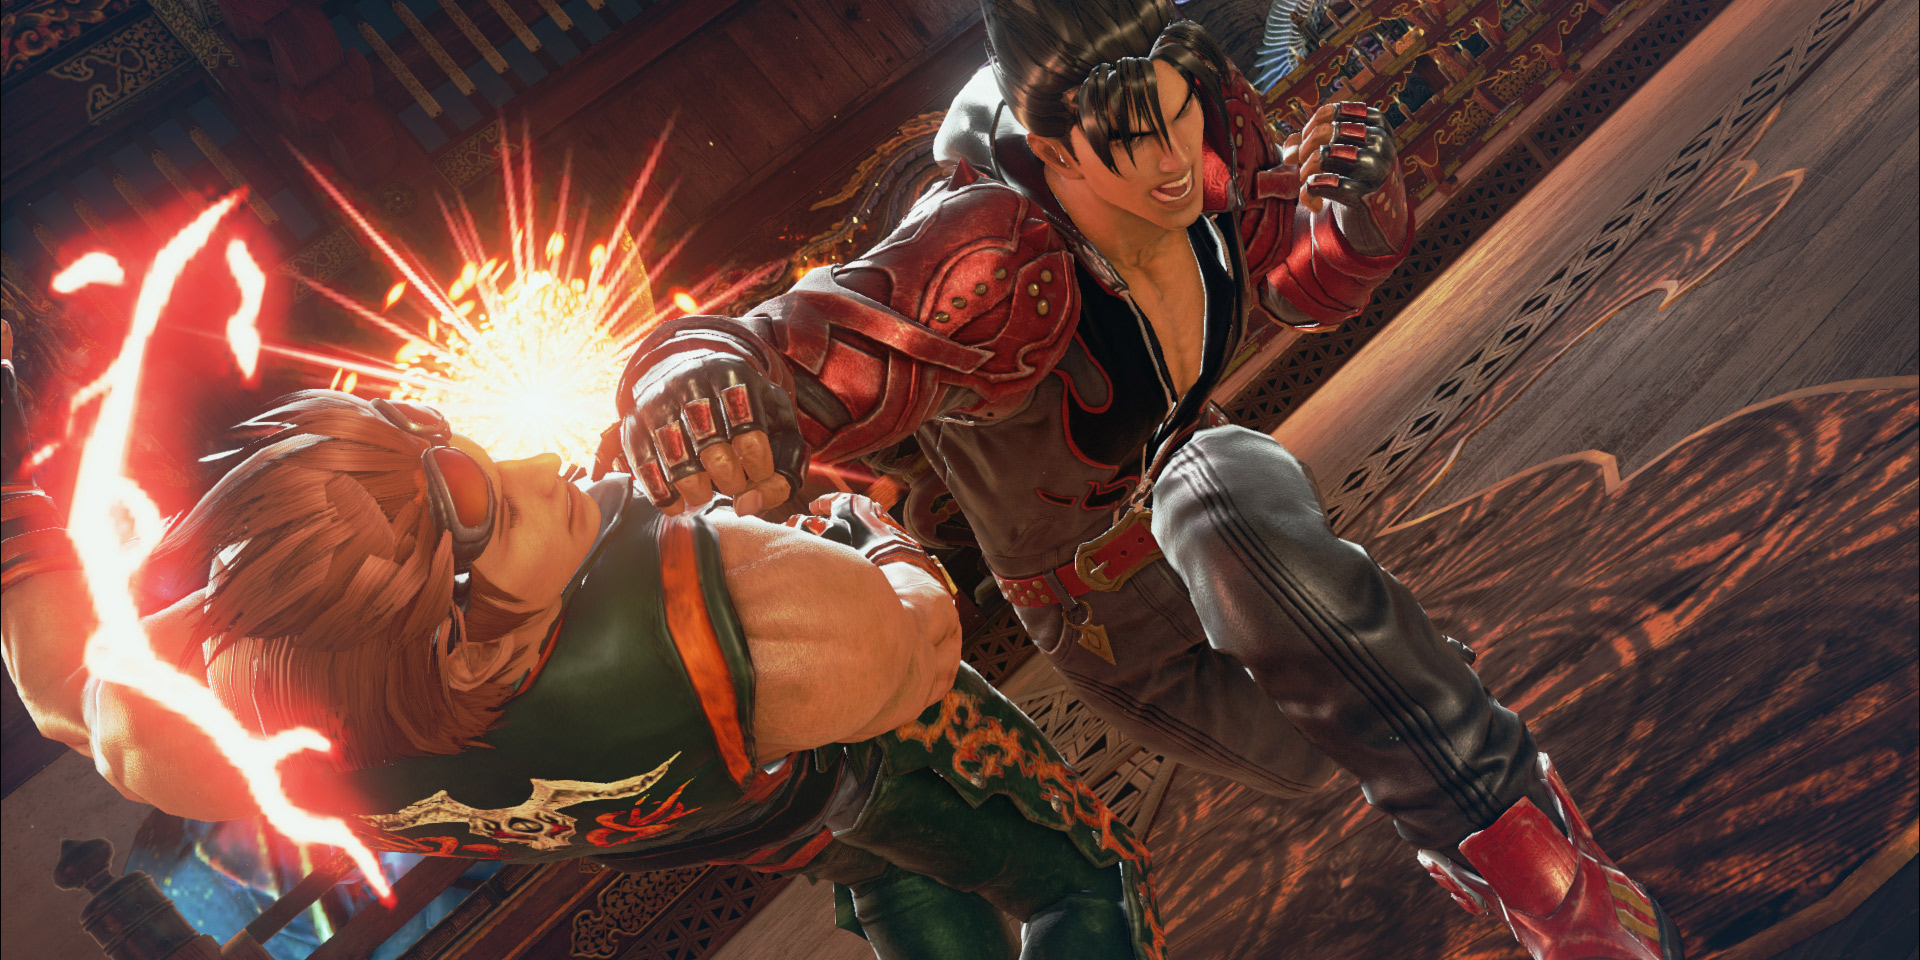 Bandai Namco Goes For The Ko With Unreal Engine 4 In Tekken 7